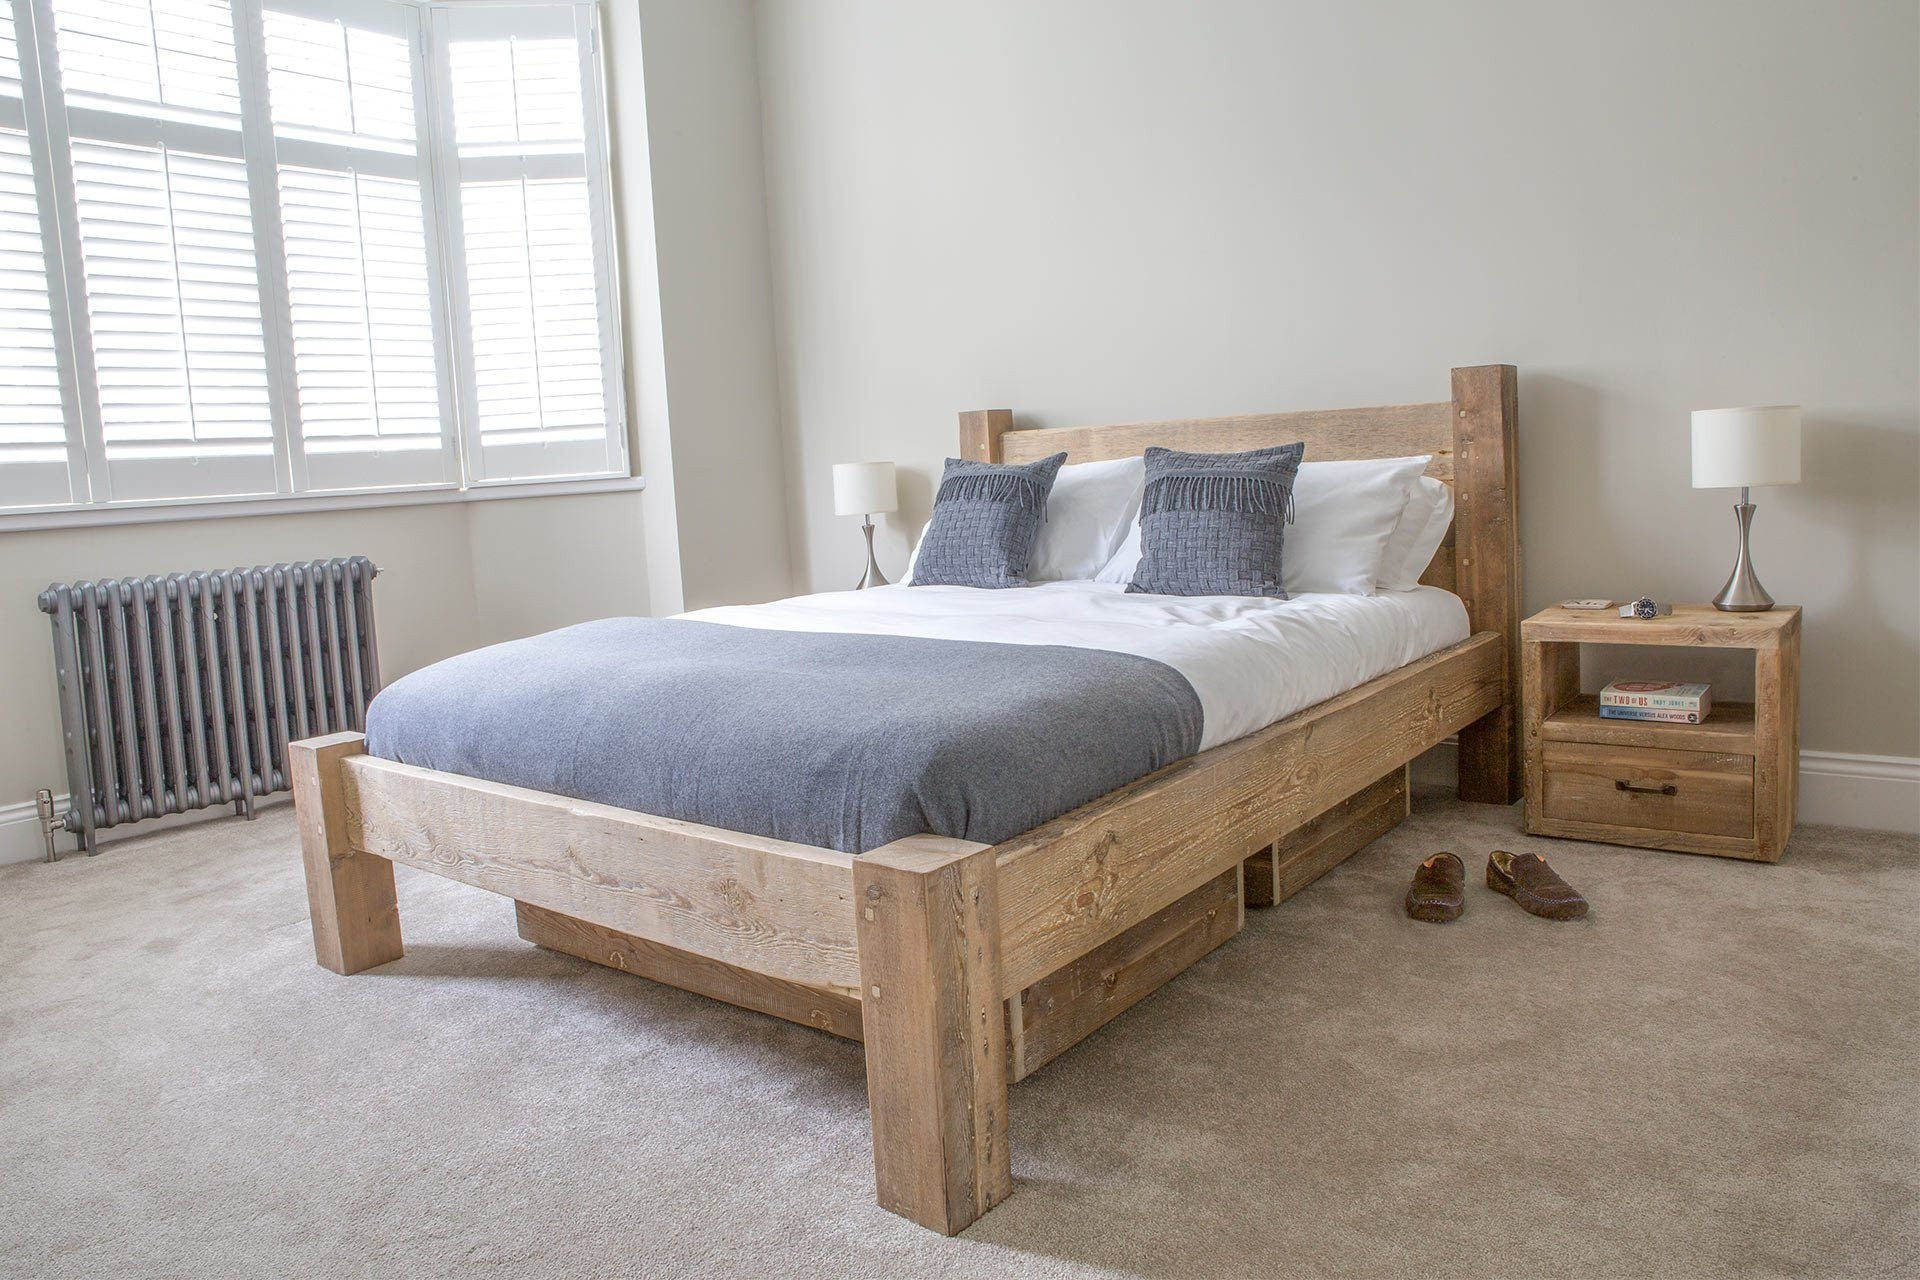 Natural Kingsize Bed With Branson 1 Drawer Bedsides & Underbed Storage (Sold Separately)